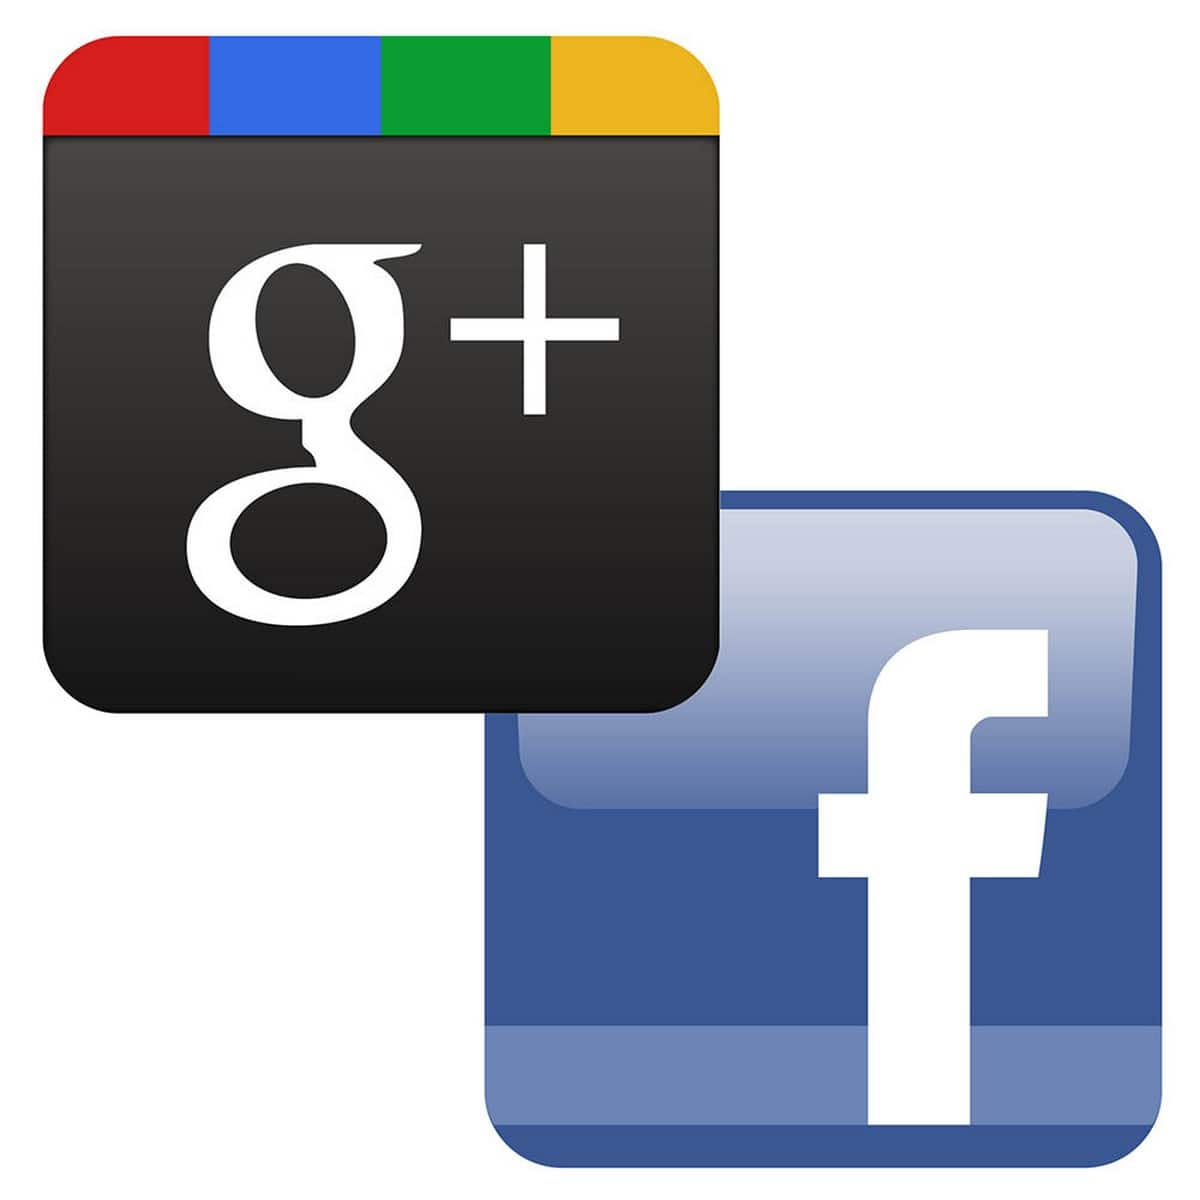 Google plus vs facebook - 2